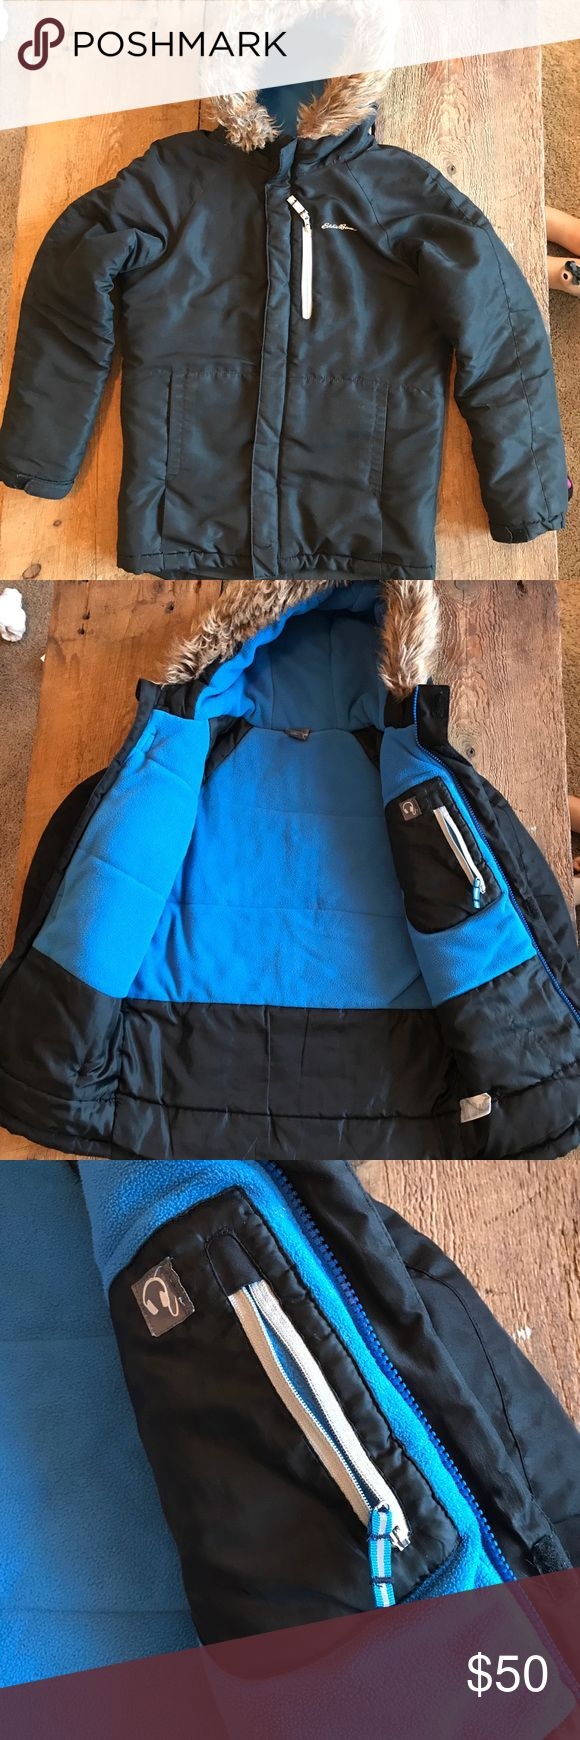 Boys Eddie Bauer Parka size 10 Great condition! Worn for about a half season before he grew out of it. Very warm with lots of functionality. My son loved the headphone/iPod holder so he could listen to music while waiting for the bus in the morning. There is very little to no signs of wear and has been freshly laundered. There has been some small repair of loose seams by the pocket and underarm which is not noticeable. Eddie Bauer Jackets & Coats